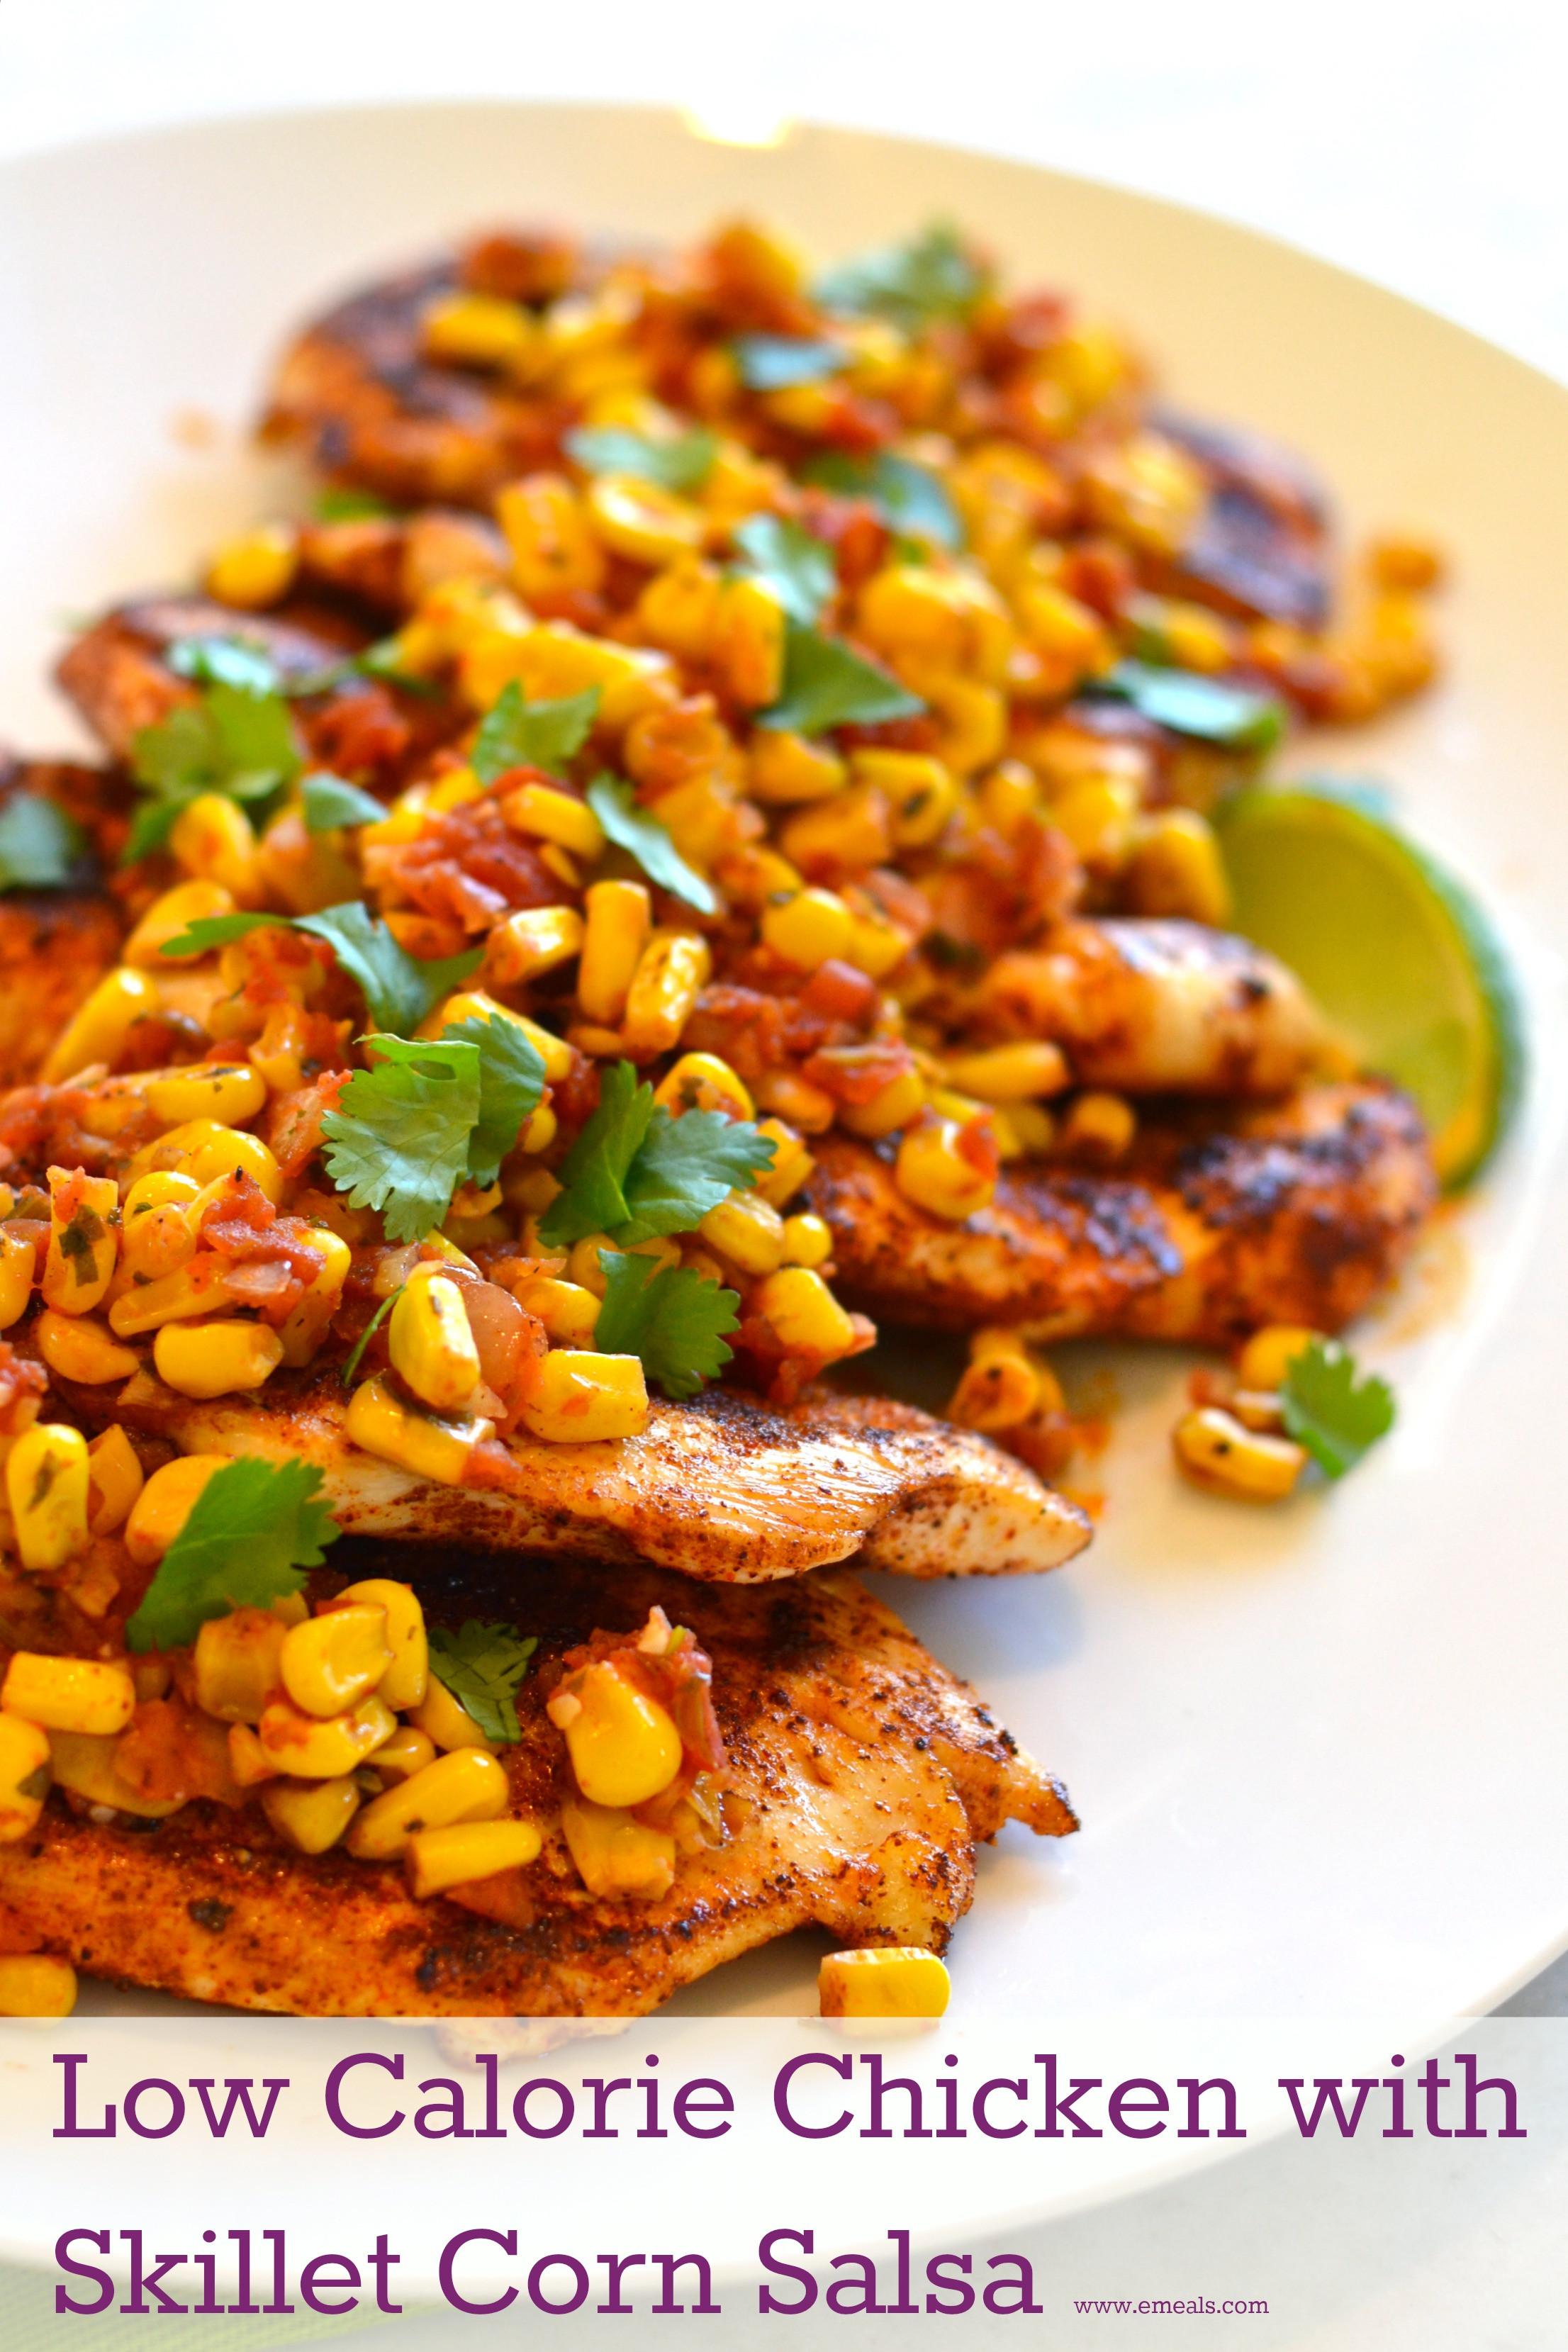 Low Calorie Chicken Dinners  Low Calorie Dinner Recipe Spicy Chicken with Skillet Corn